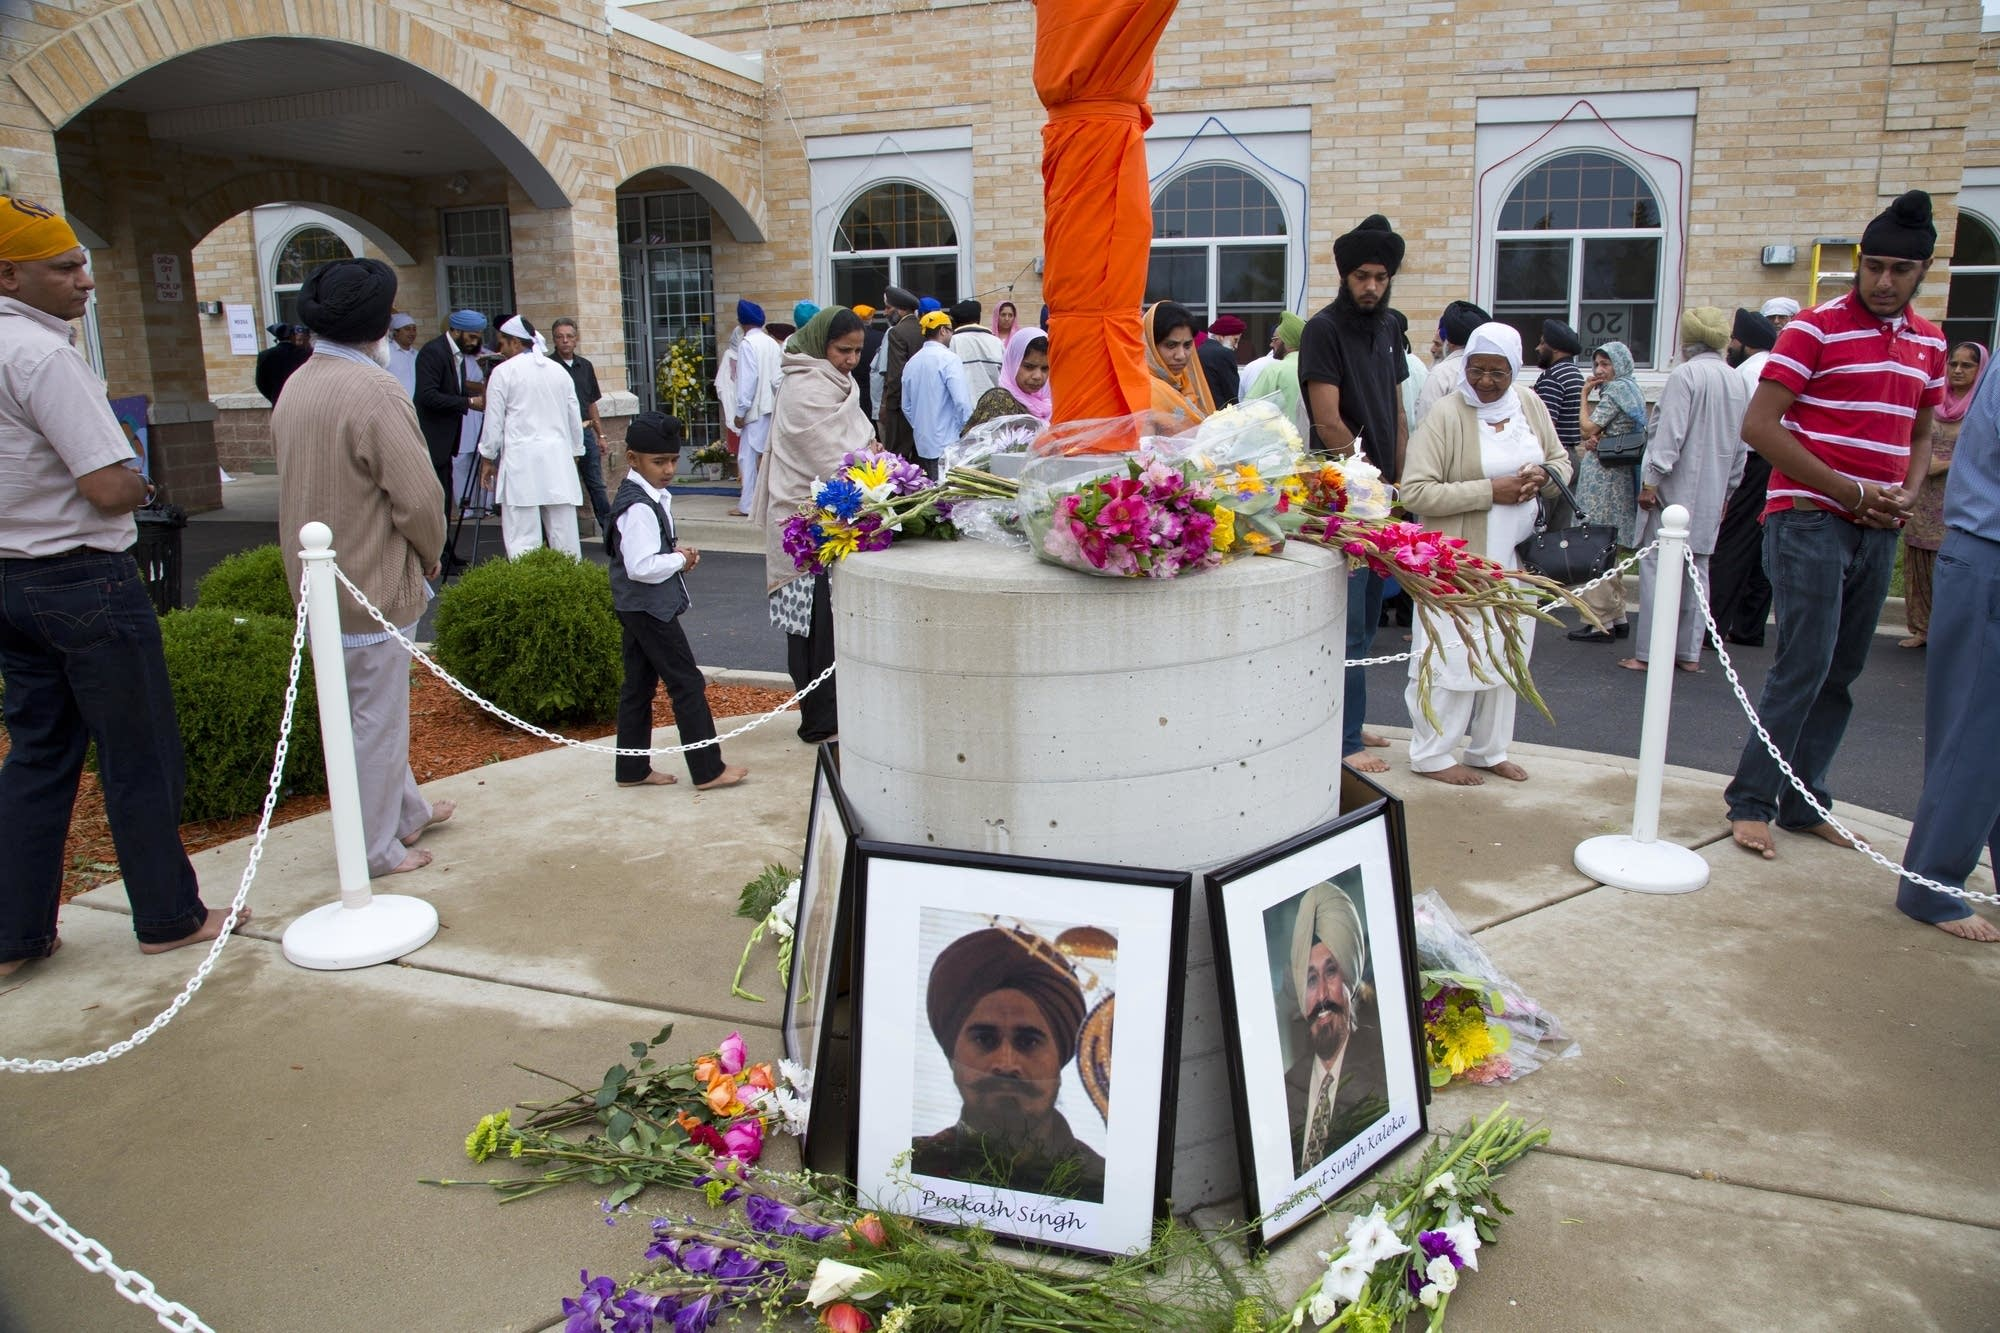 People walk around a flag pole outside the Sikh Temple of Wisconsin.